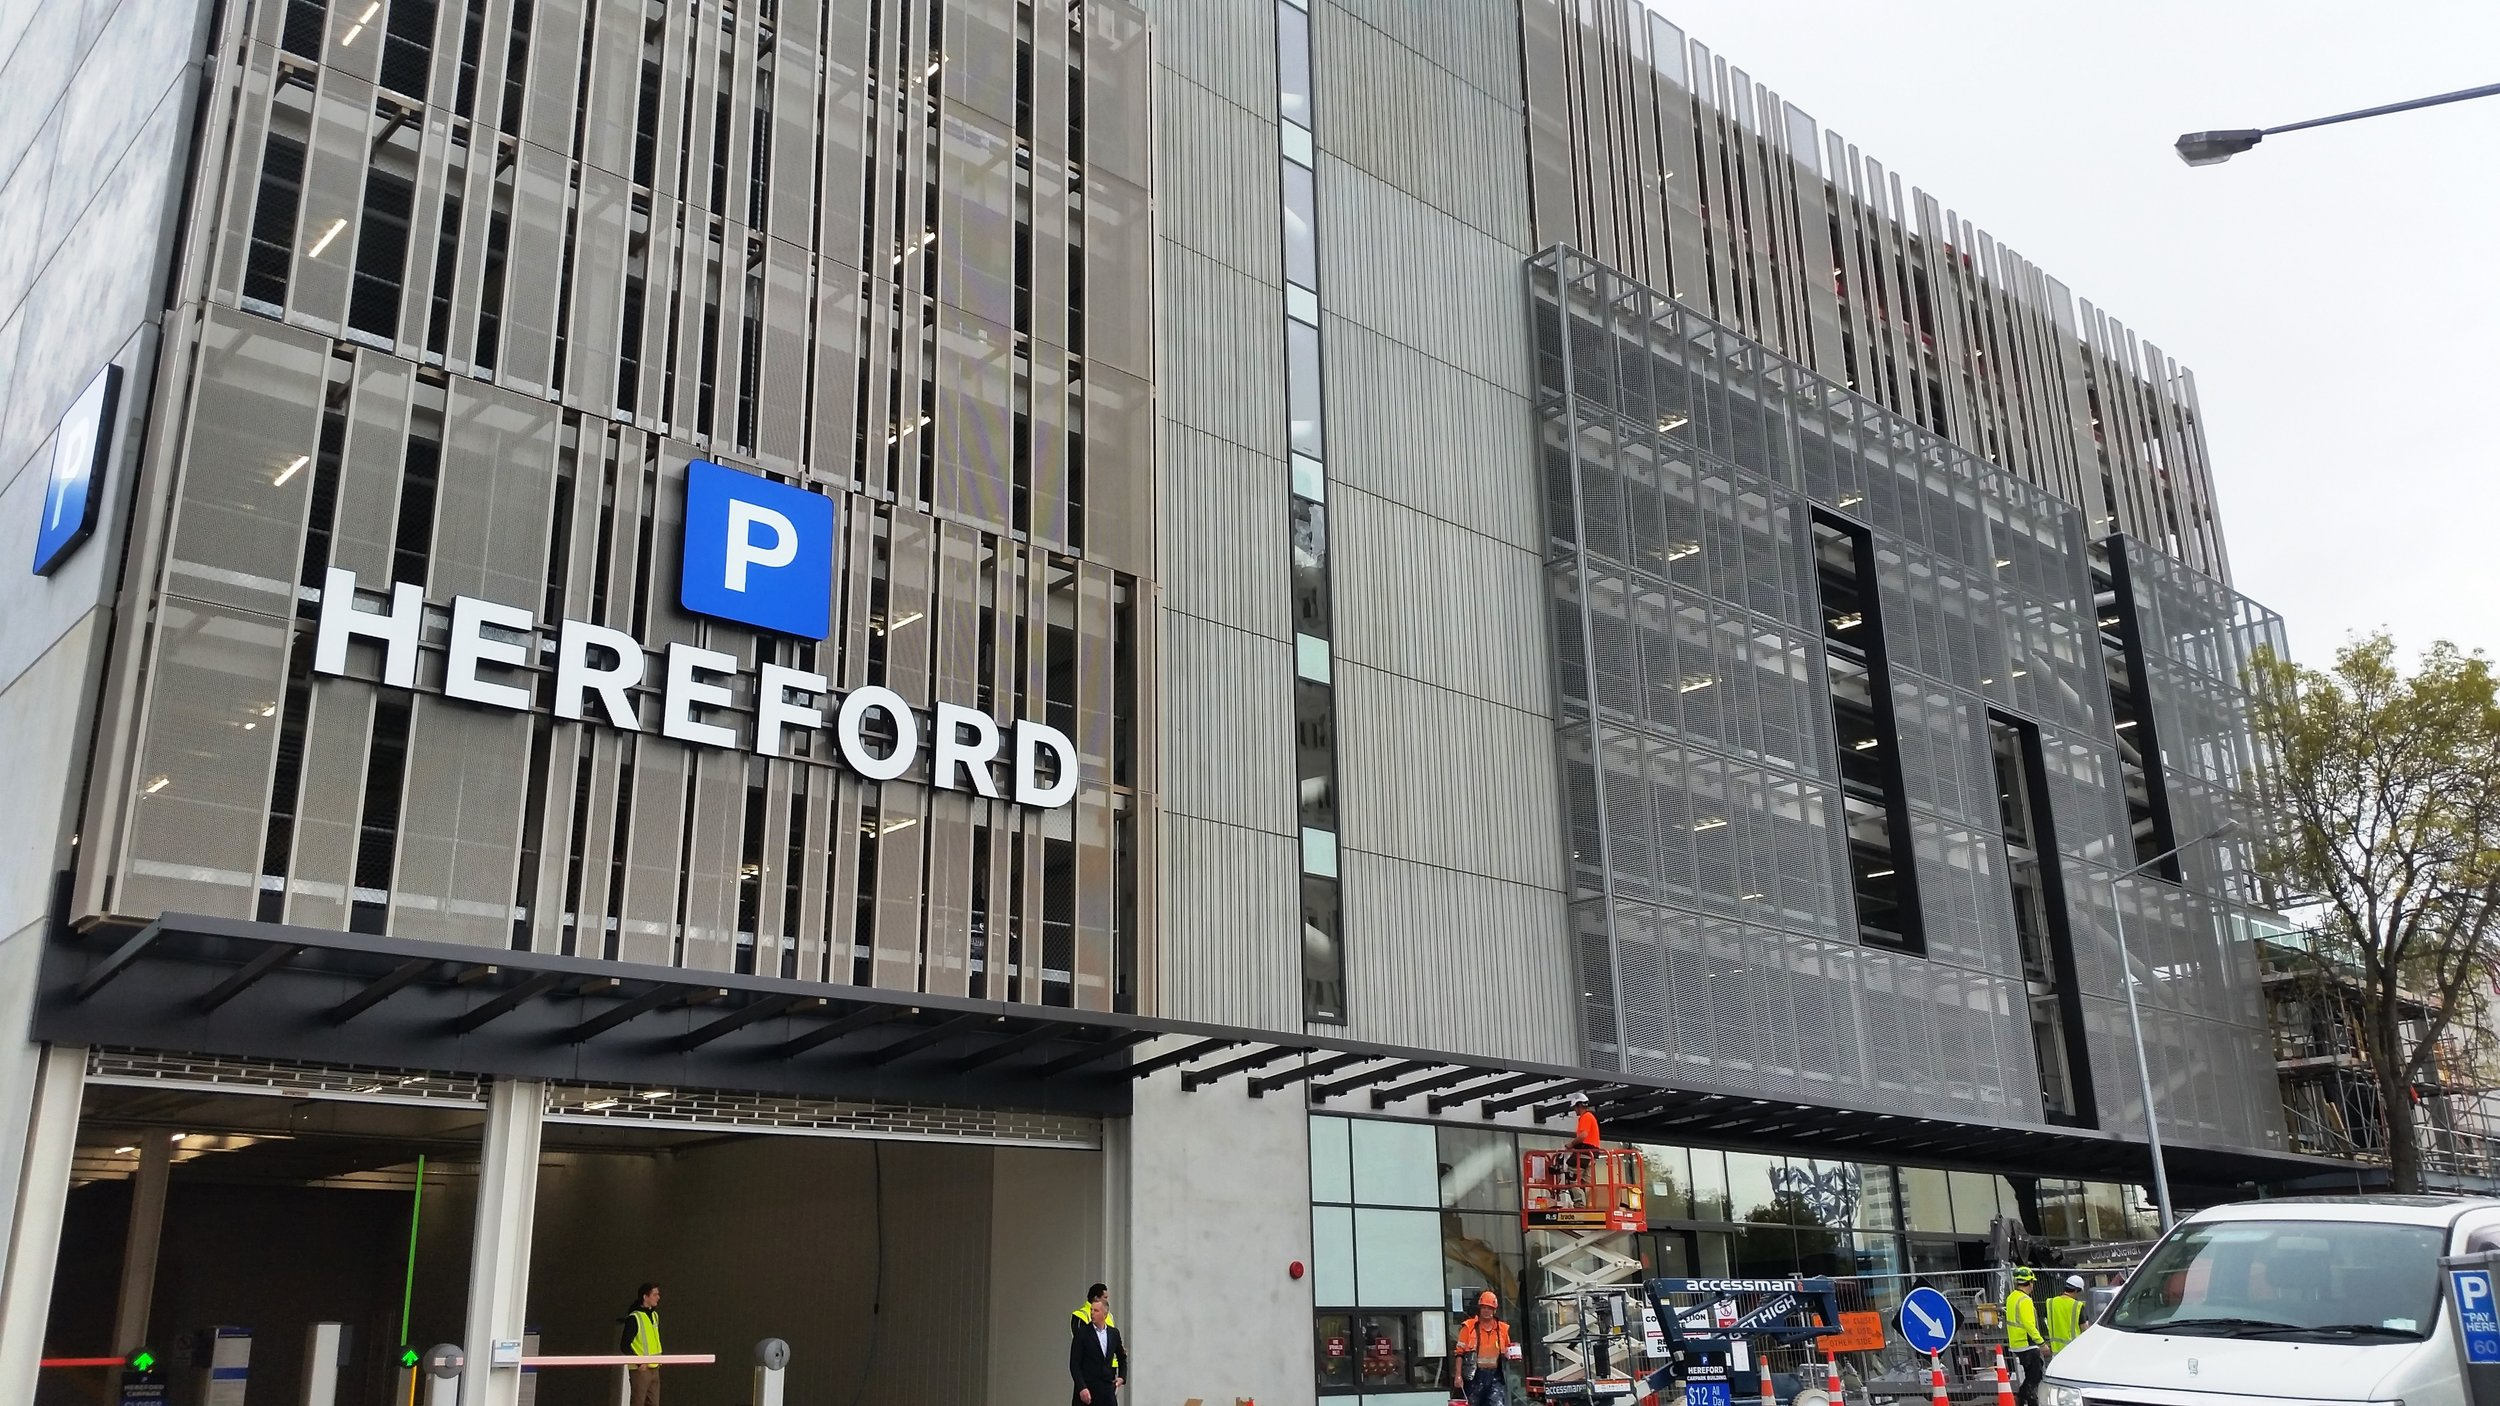 Hereford Street Carpark and Retail Development, Christchurch